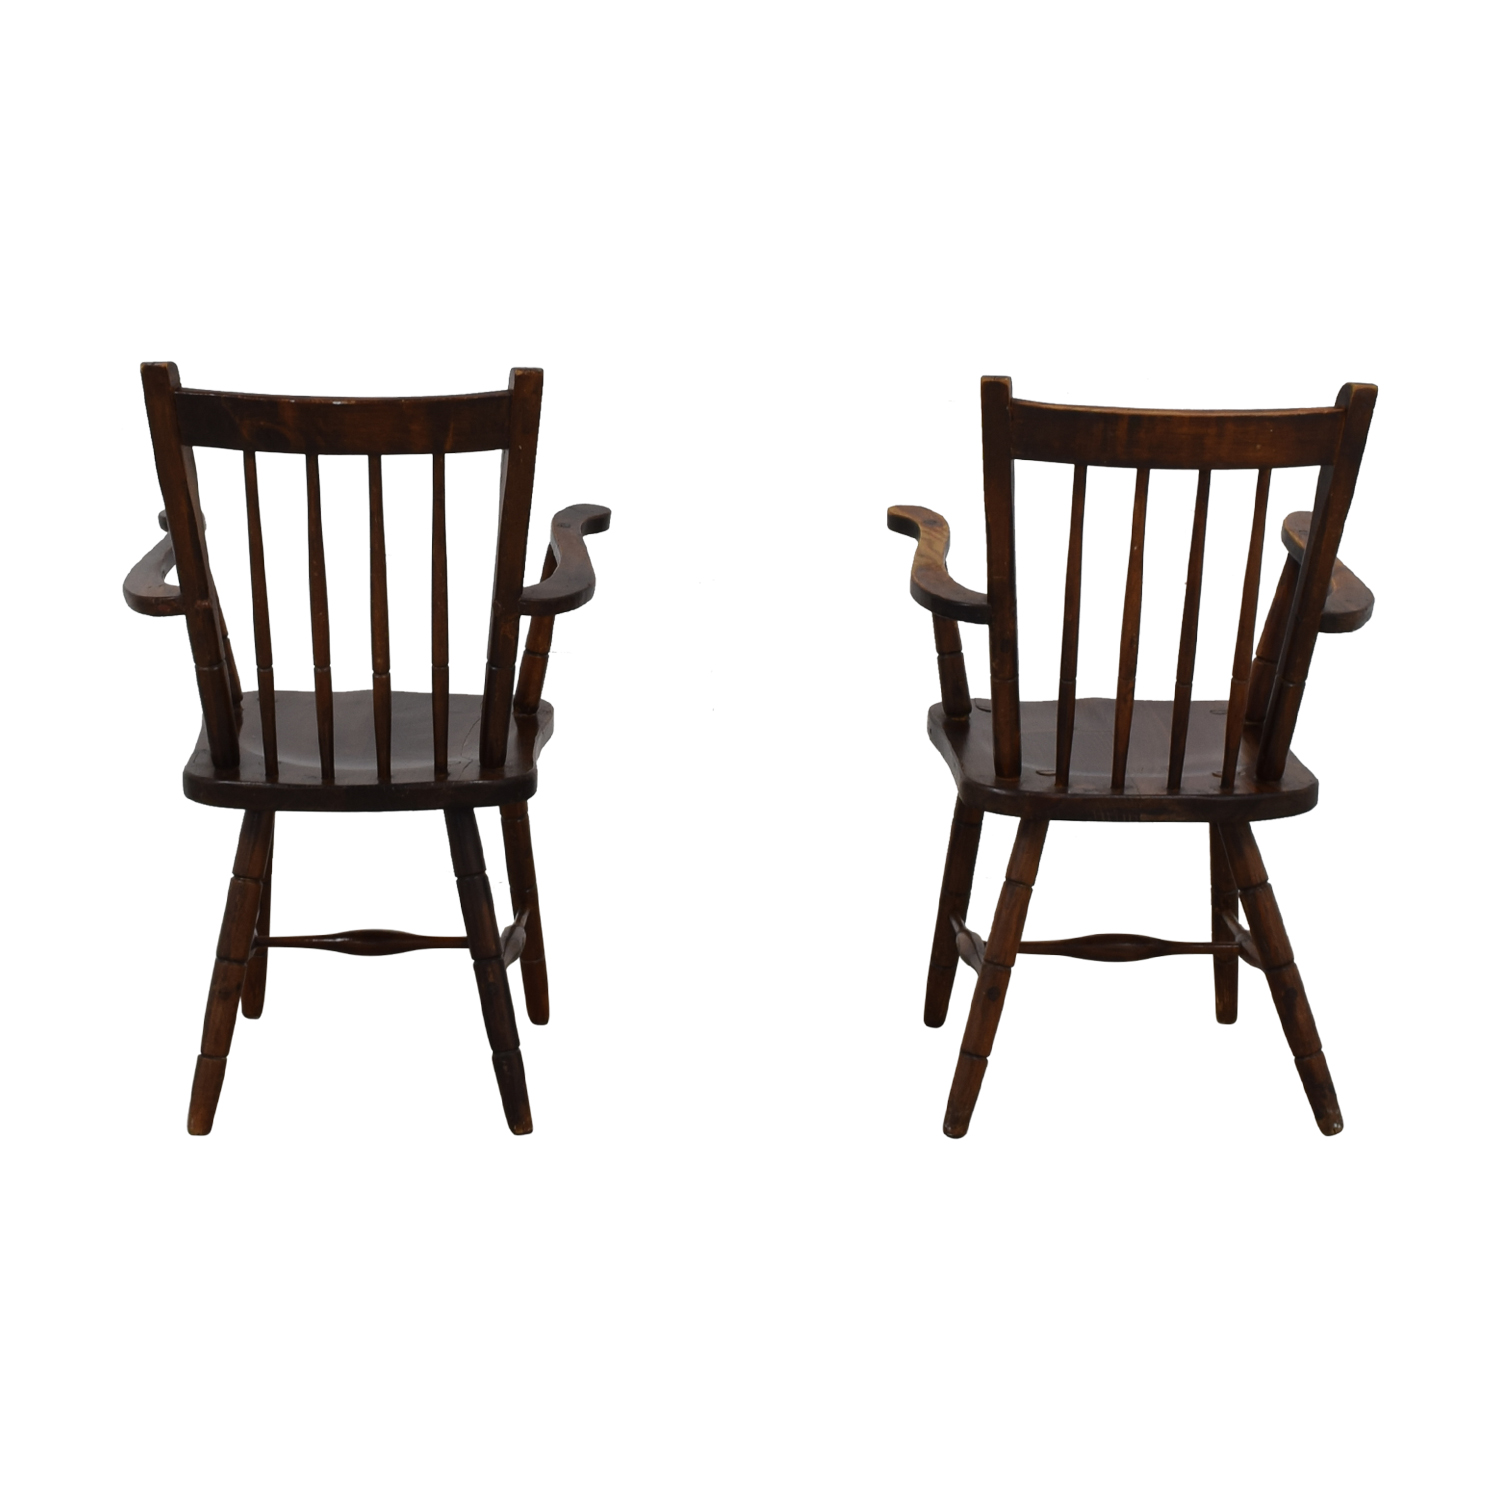 Set of Pine Chairs on sale